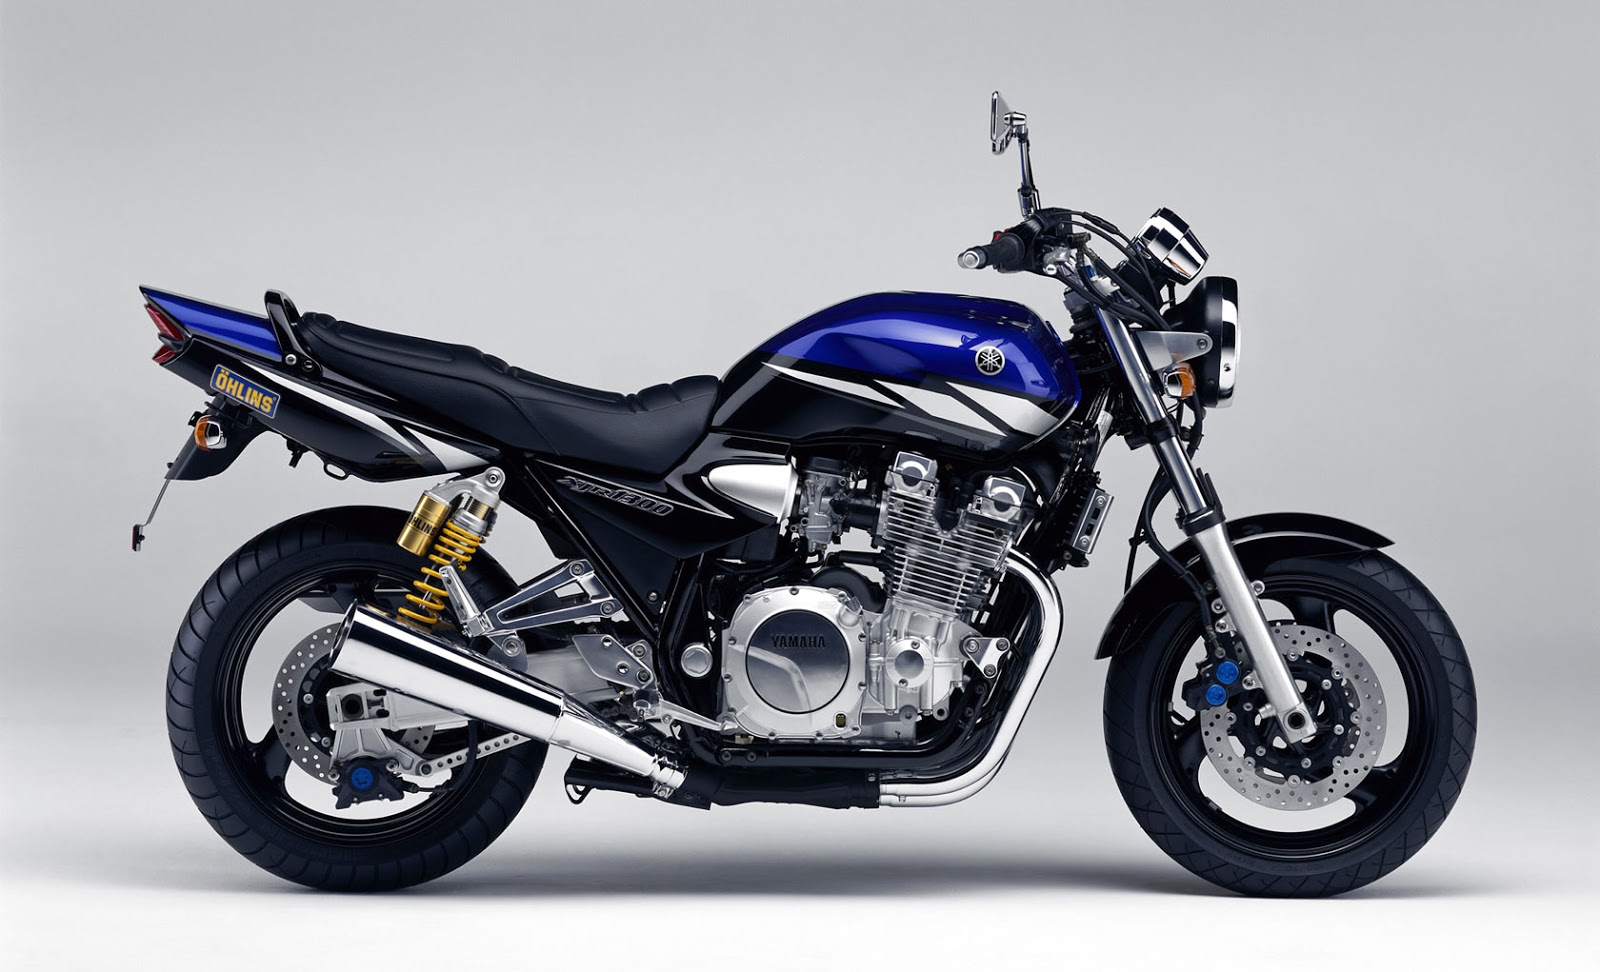 the legendary 2013 yamaha xjr1300